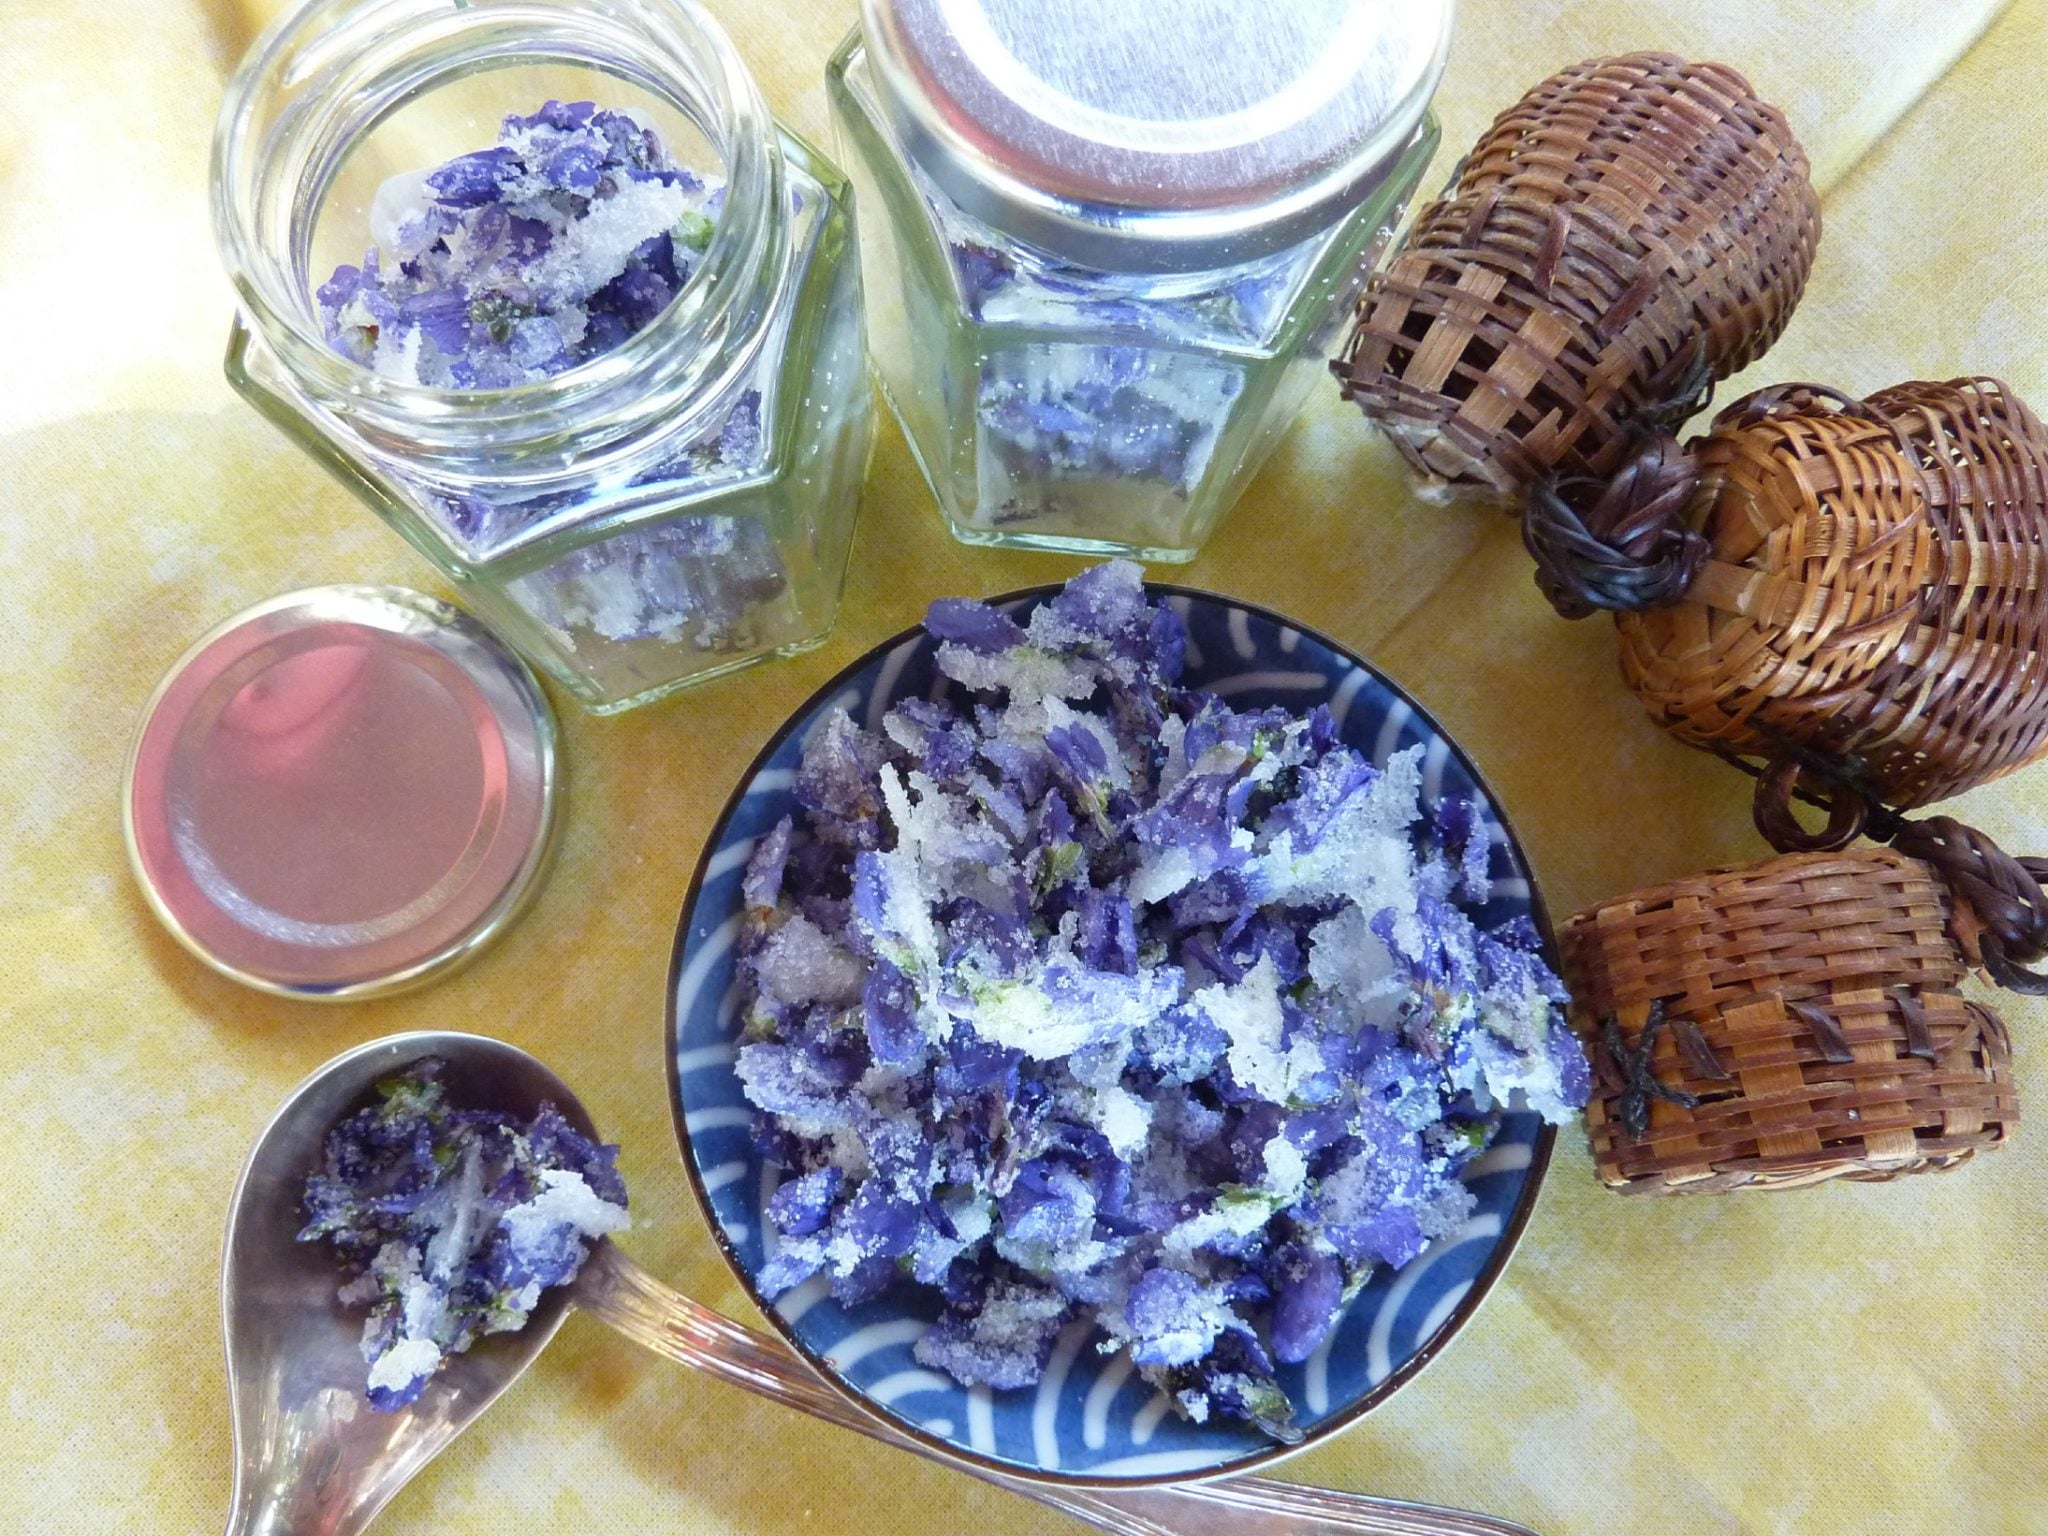 homemade crystallized violets recipe